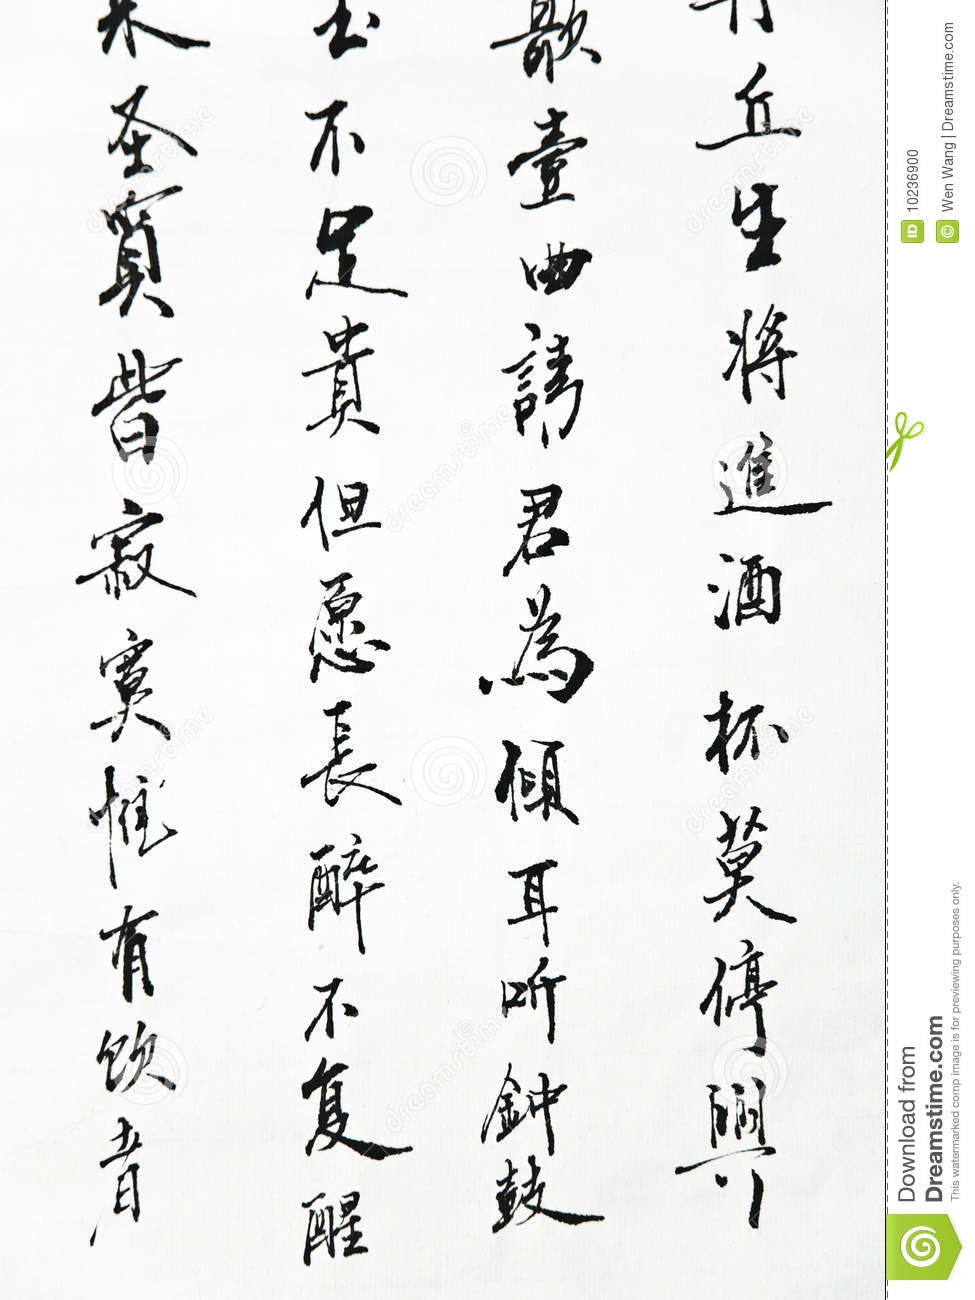 chinese calligraphy drawing - photo #26